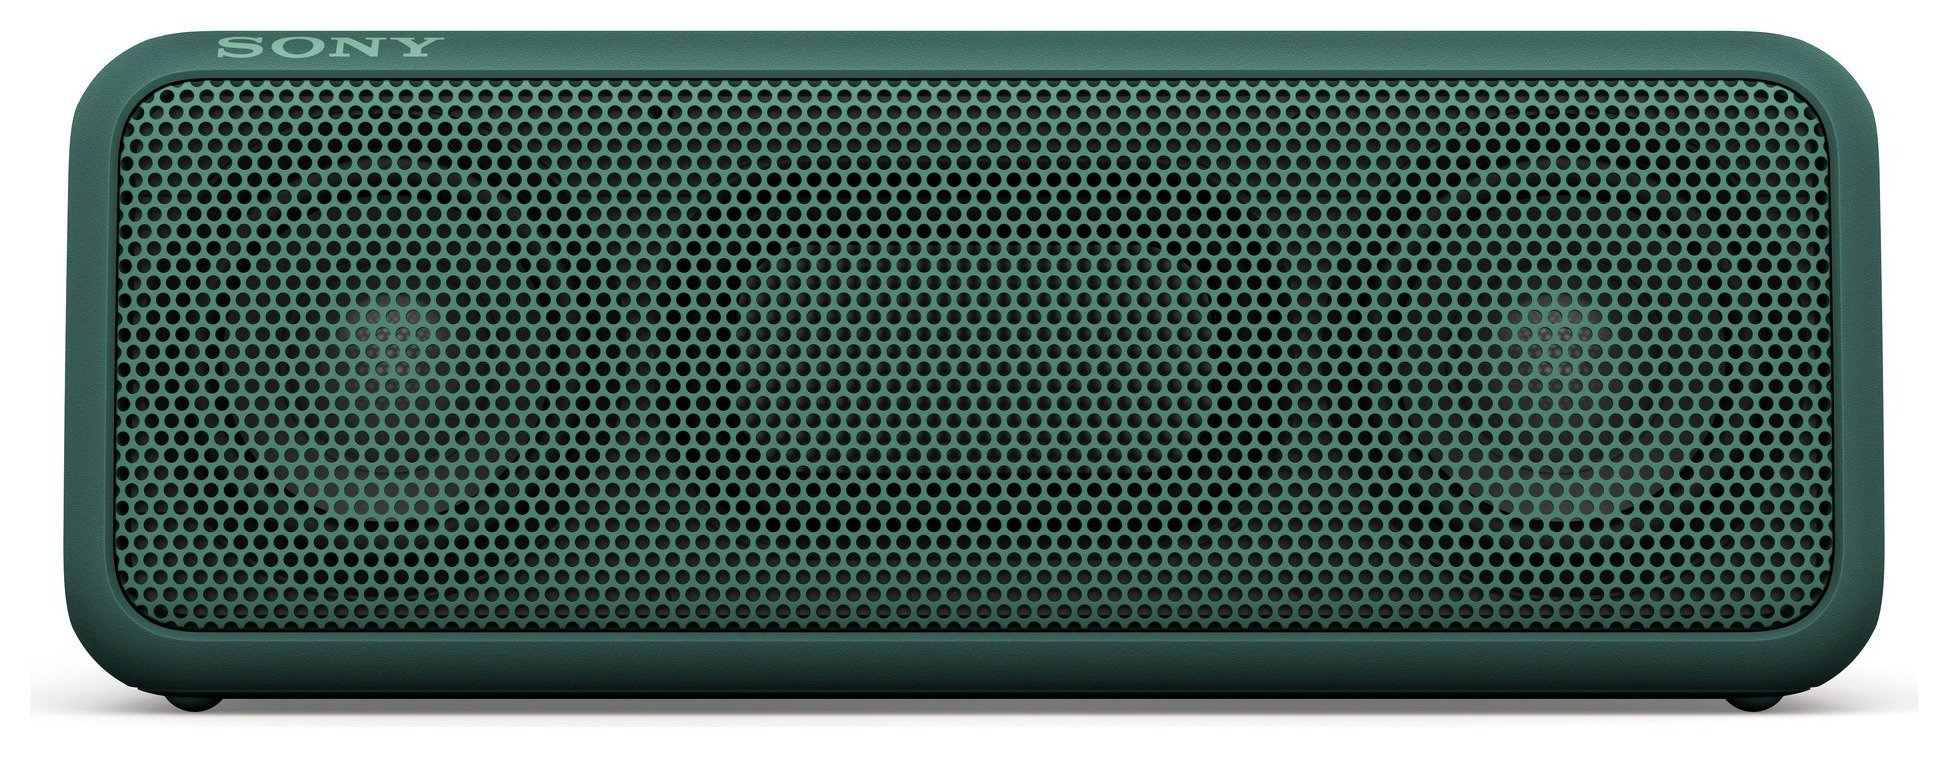 Sony SRS-XB3 Extra Bass Wireless Speaker � Green.